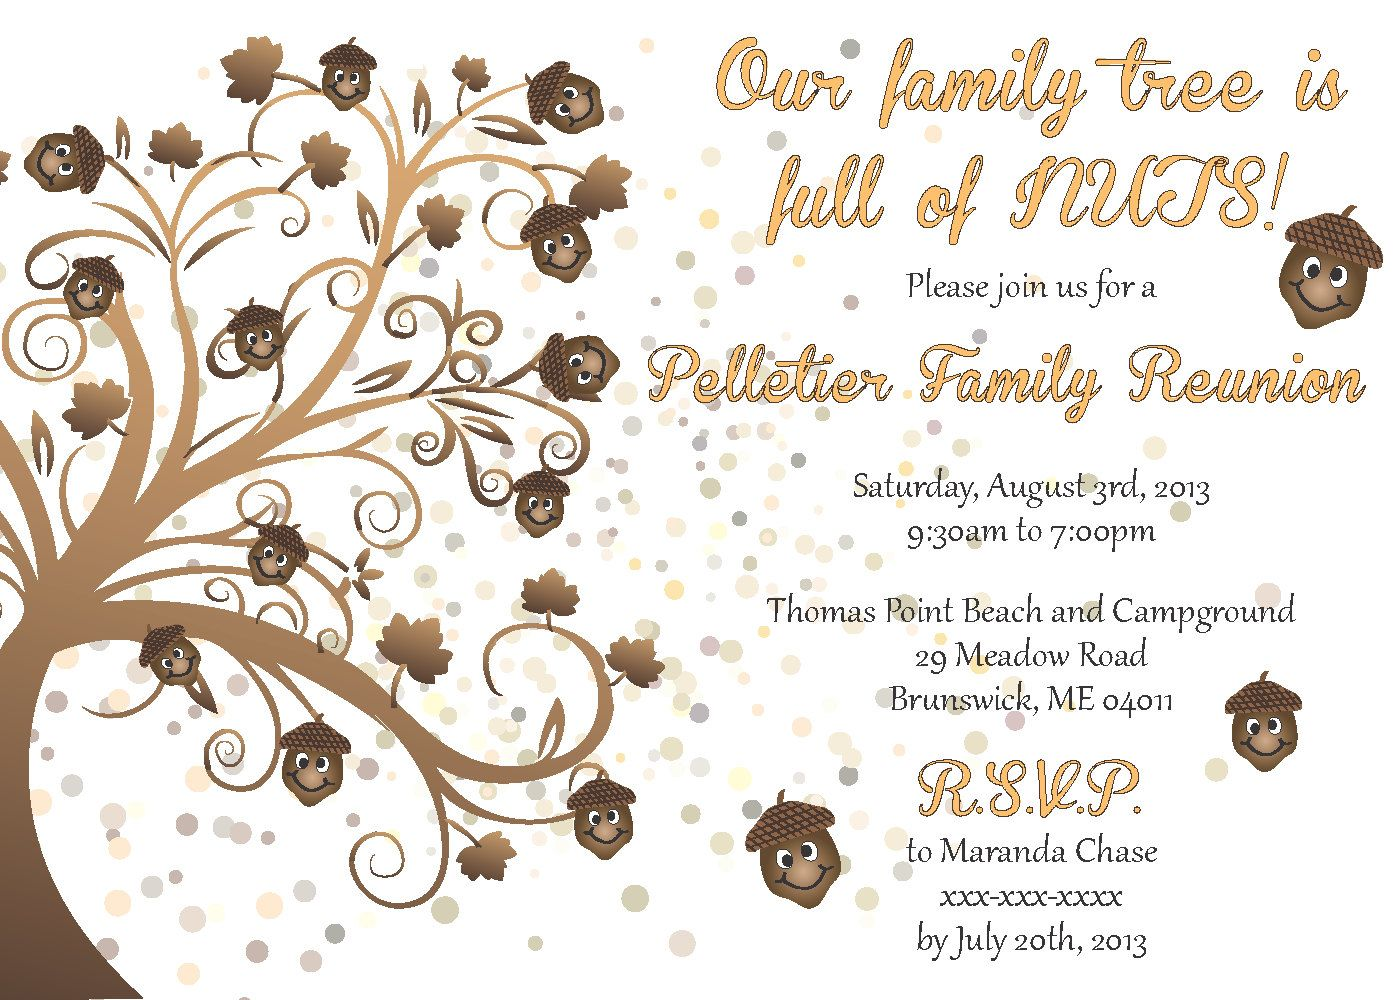 Customizable family reunion invitation Reunion Ideas – Free Printable Family Reunion Invitations